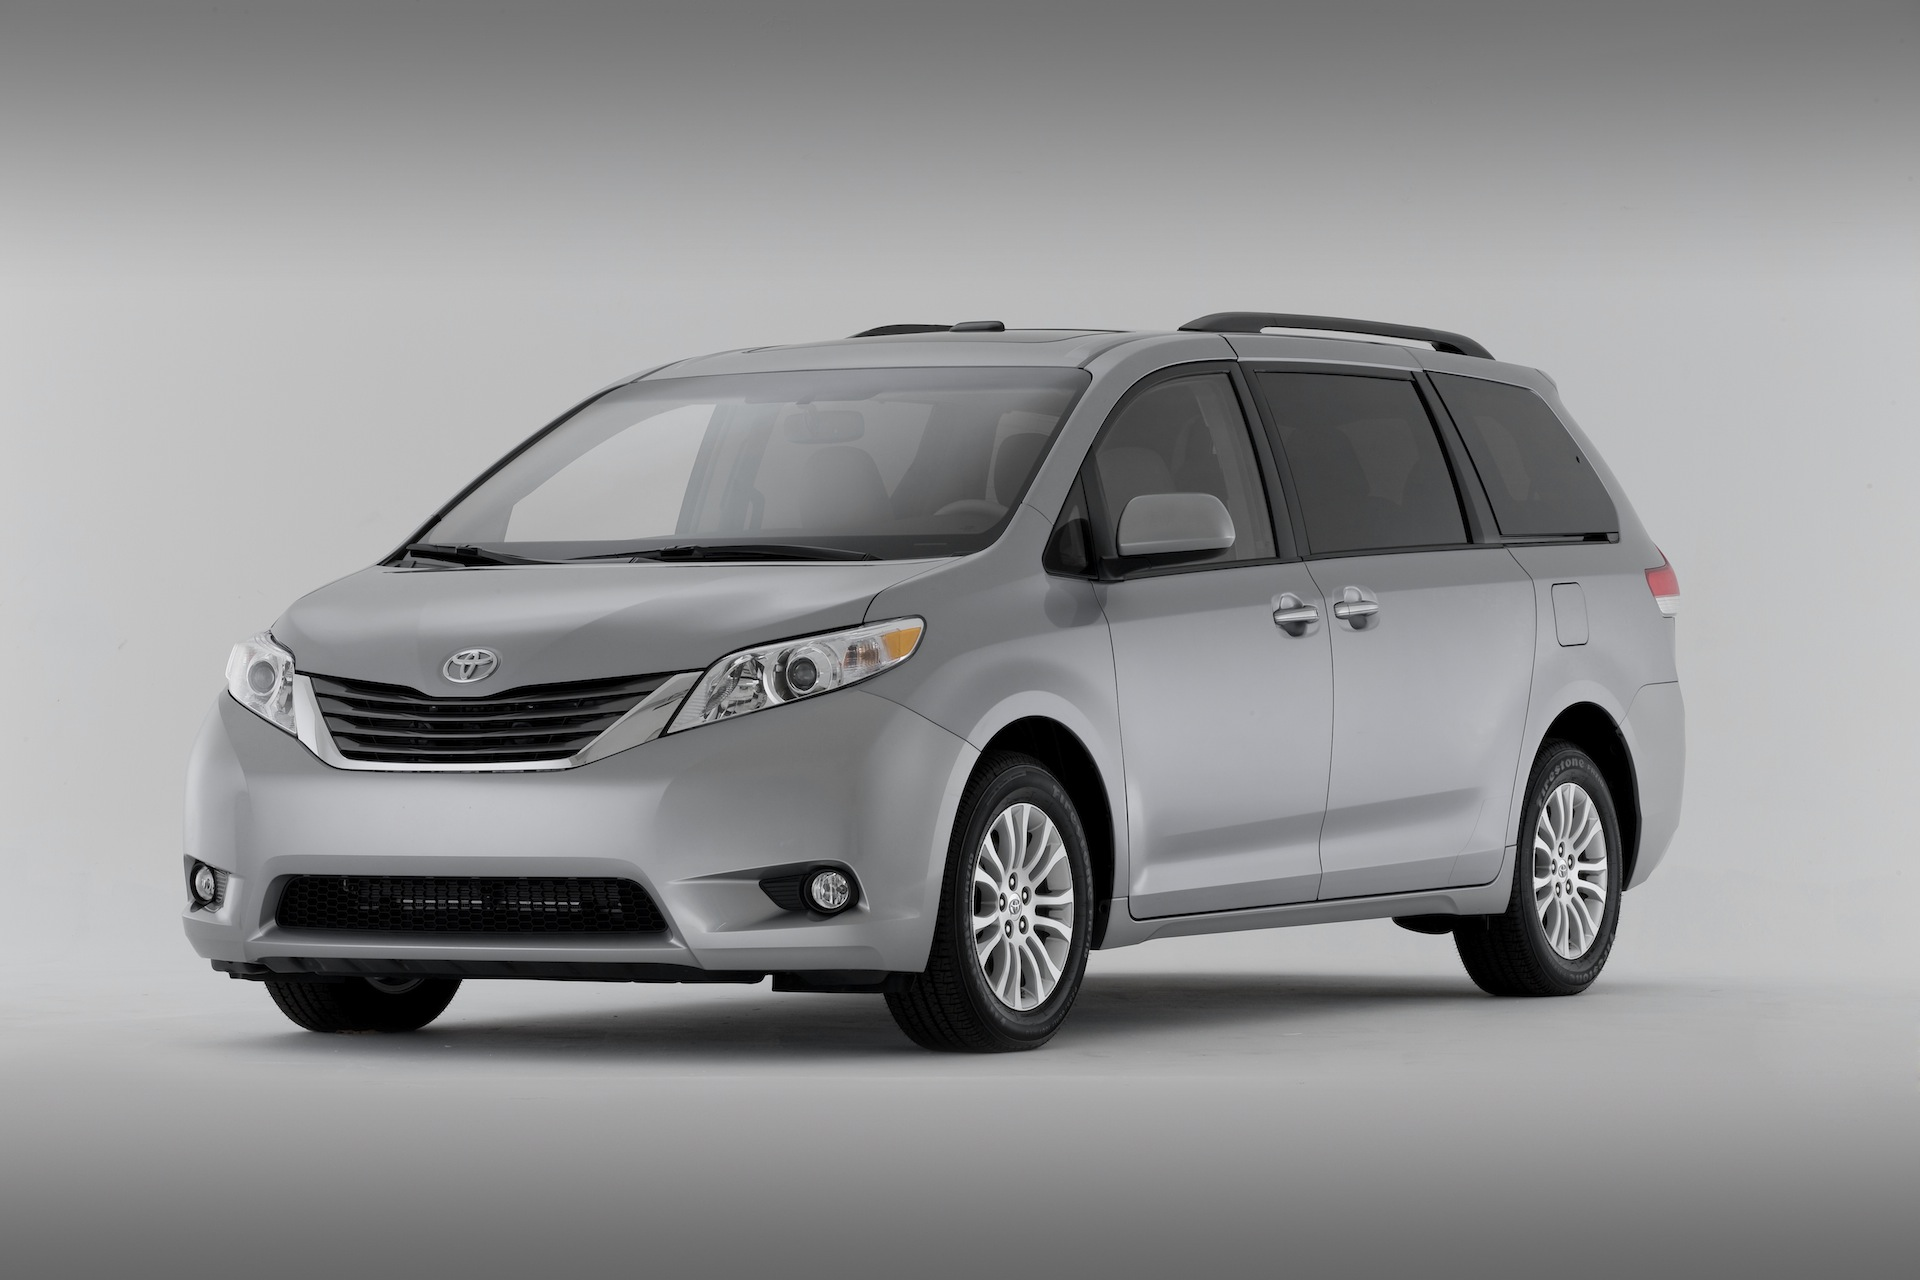 Pictures of toyota sienna #13